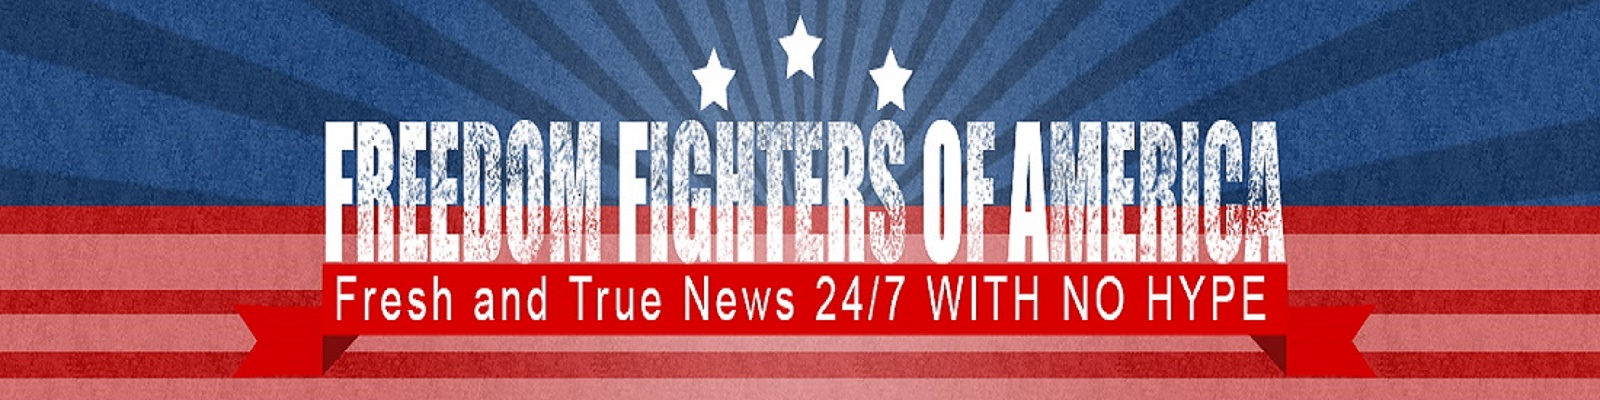 Freedom Fighters Of America  Founder